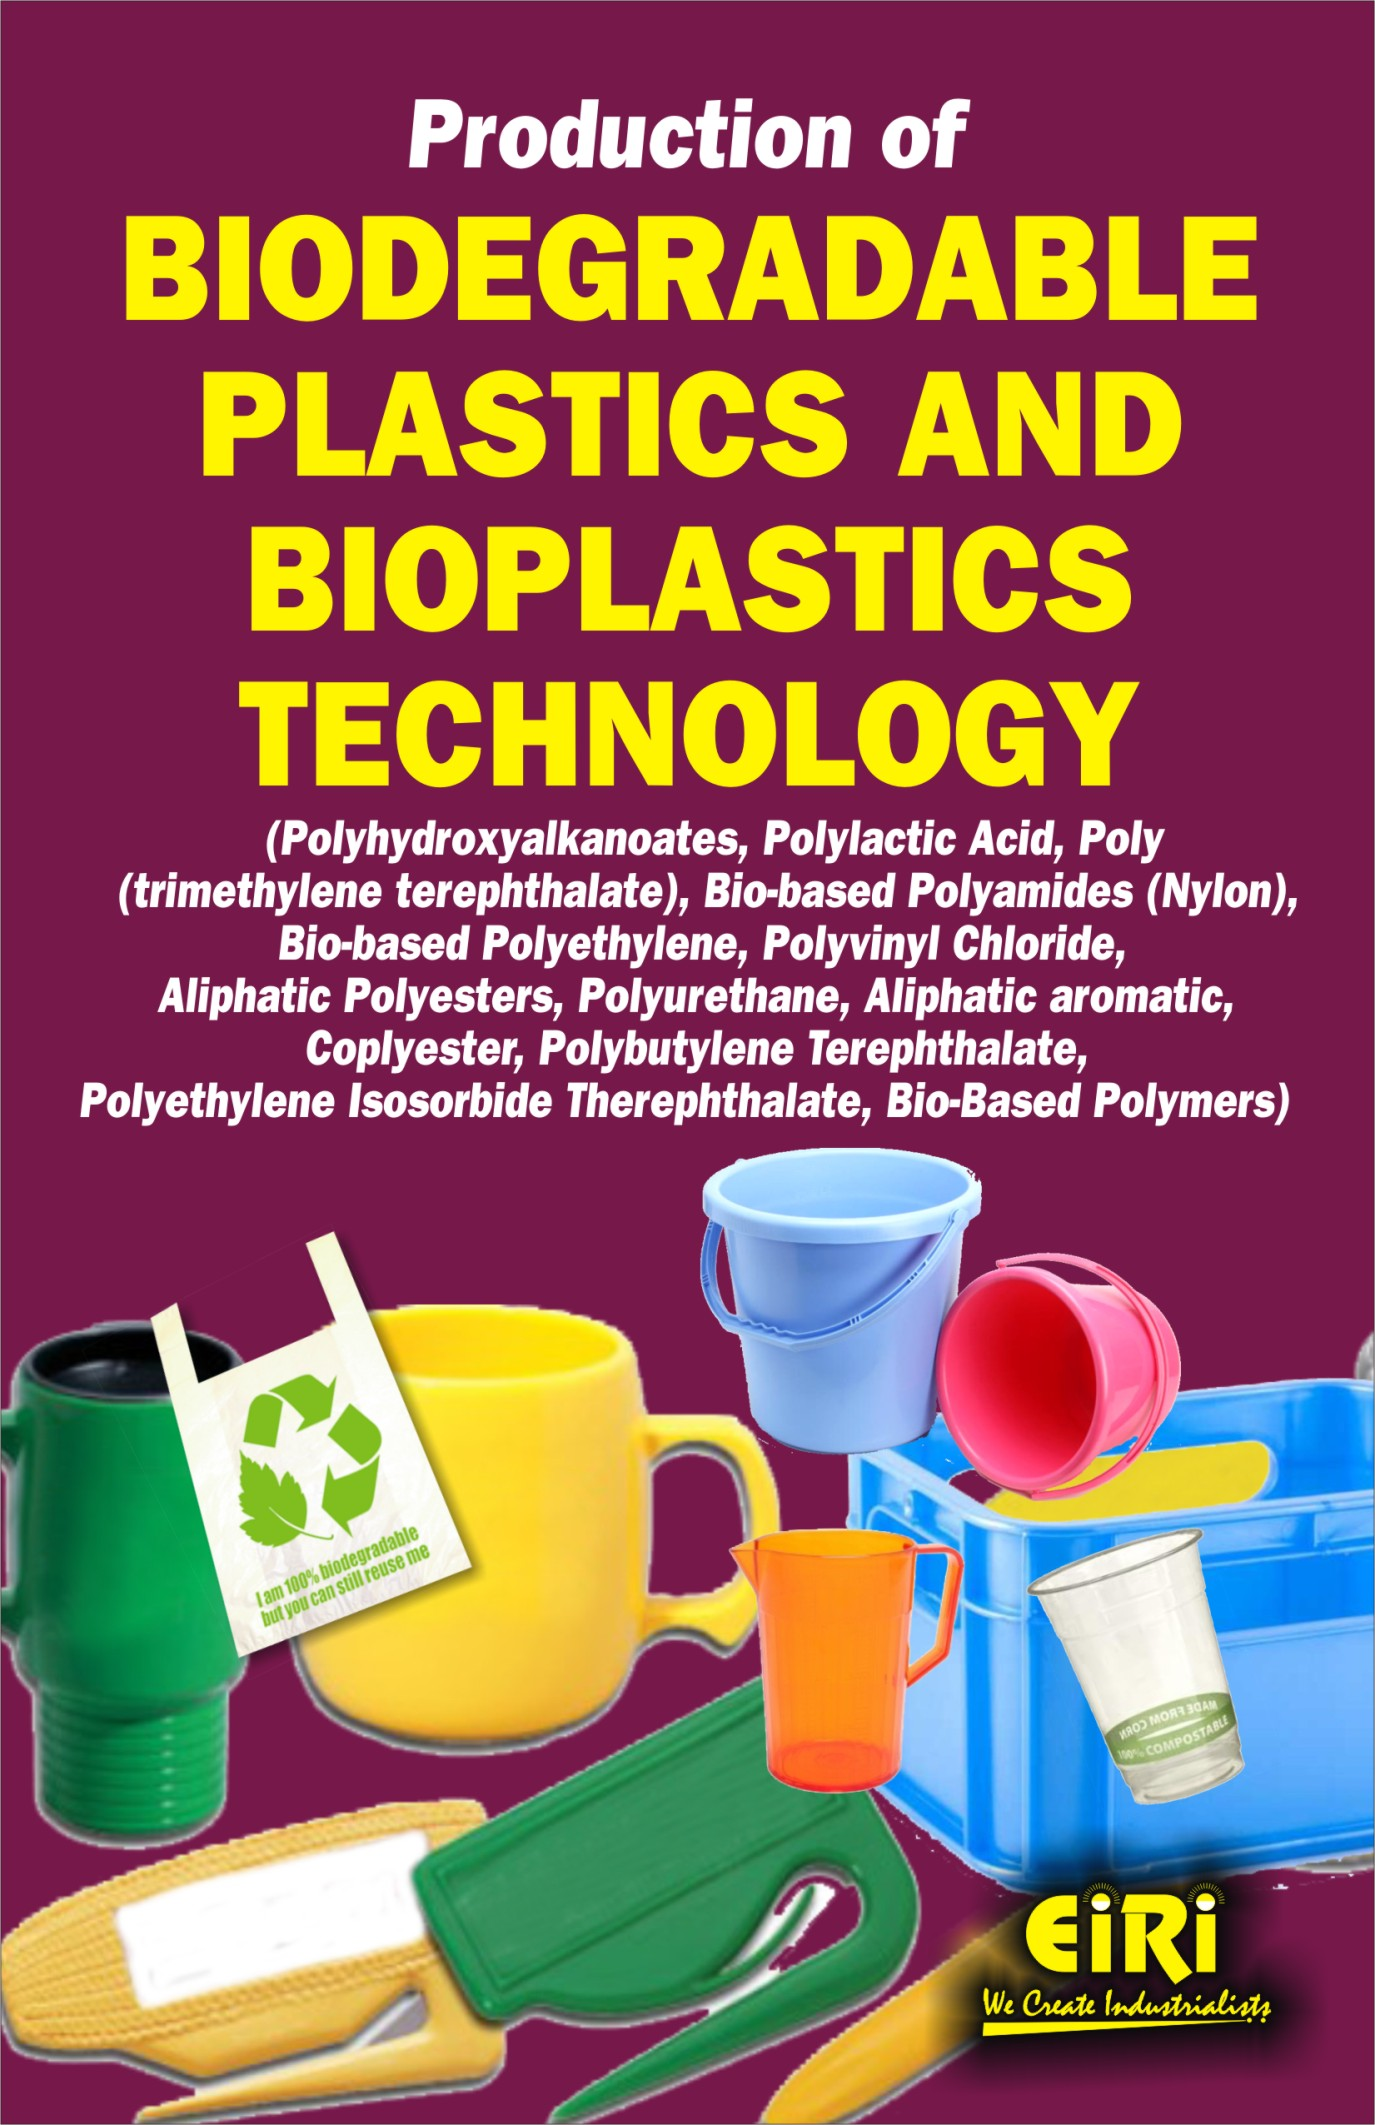 PRODUCTION OF BIODEGRADABLE PLASTICS AND BIOPLASTICS TECHNOLOGY (POLYLACTIC  ACID, BIO-BASED POLYETHYLENE, POLYVINYL CHLORIDE, ALIPHATIC POLYESTERS,